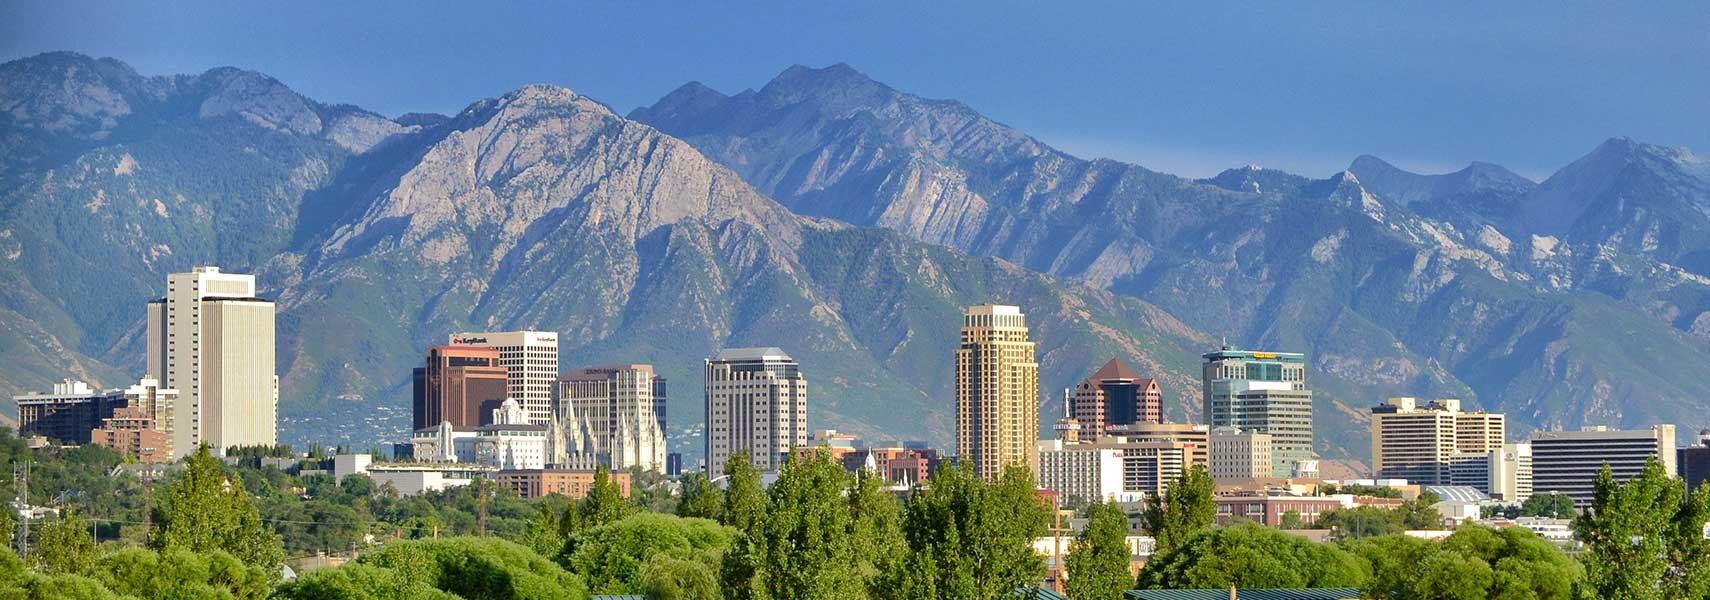 Google Map of Salt Lake City Utah USA Nations Online Project – Salt Lake City Tourist Attractions Map